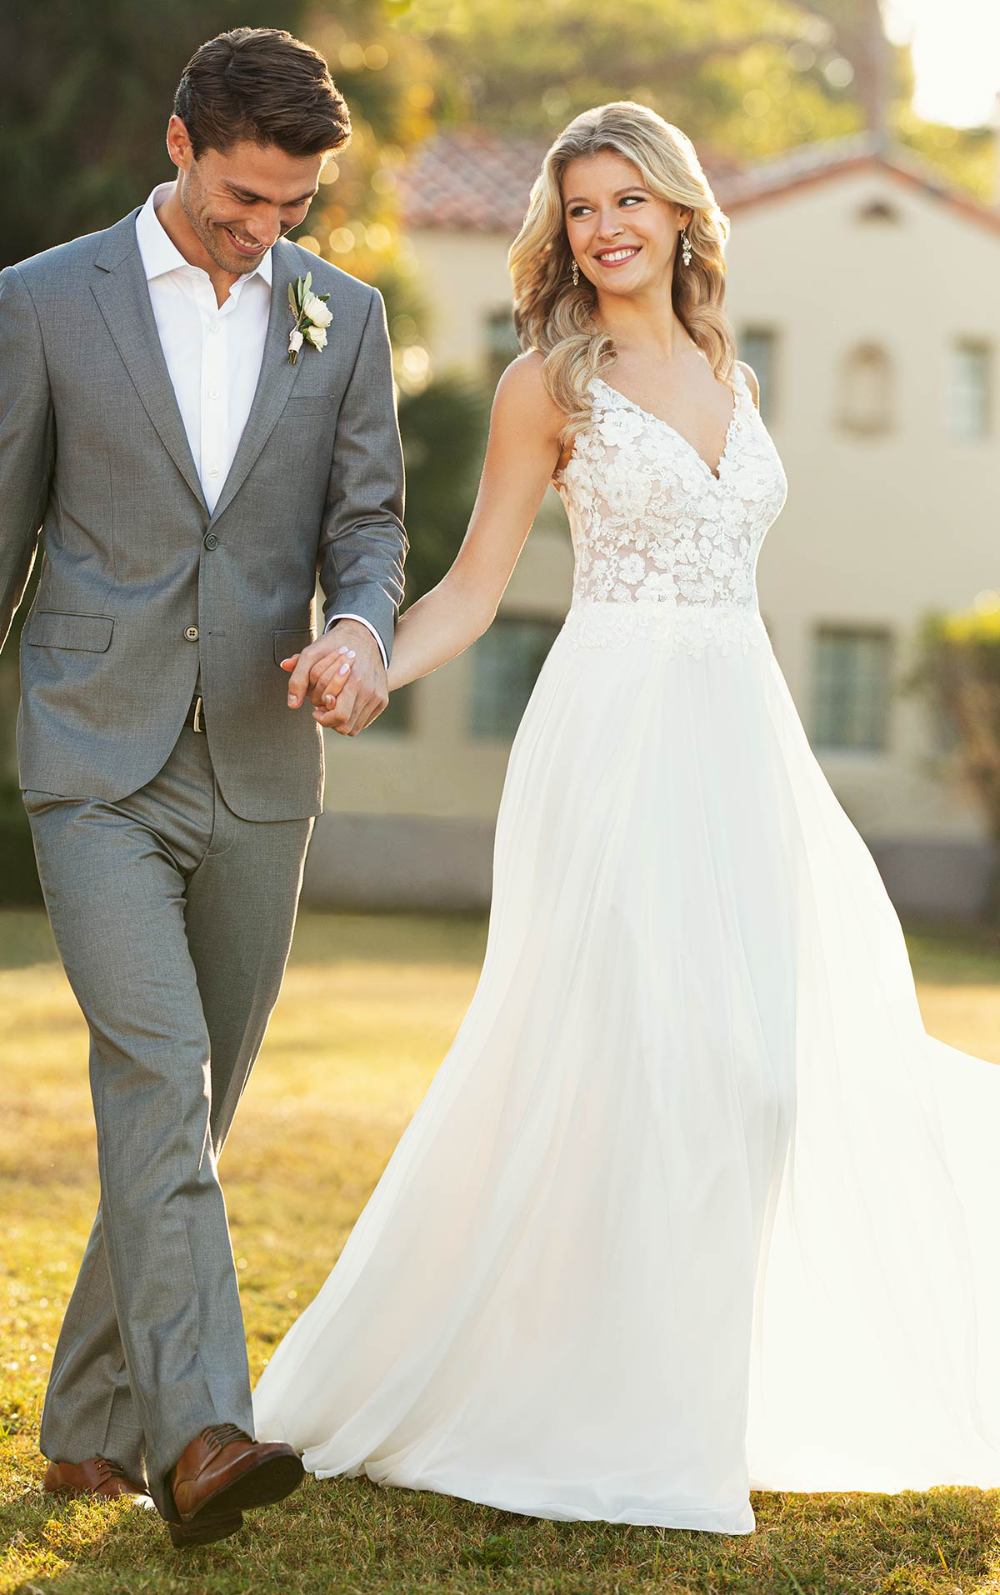 Elegant Beach Wedding Dress With Lace And Chiffon Stella York Wedding Dresses In 2020 Stella York Wedding Dress A Line Wedding Dress Bridal Couture